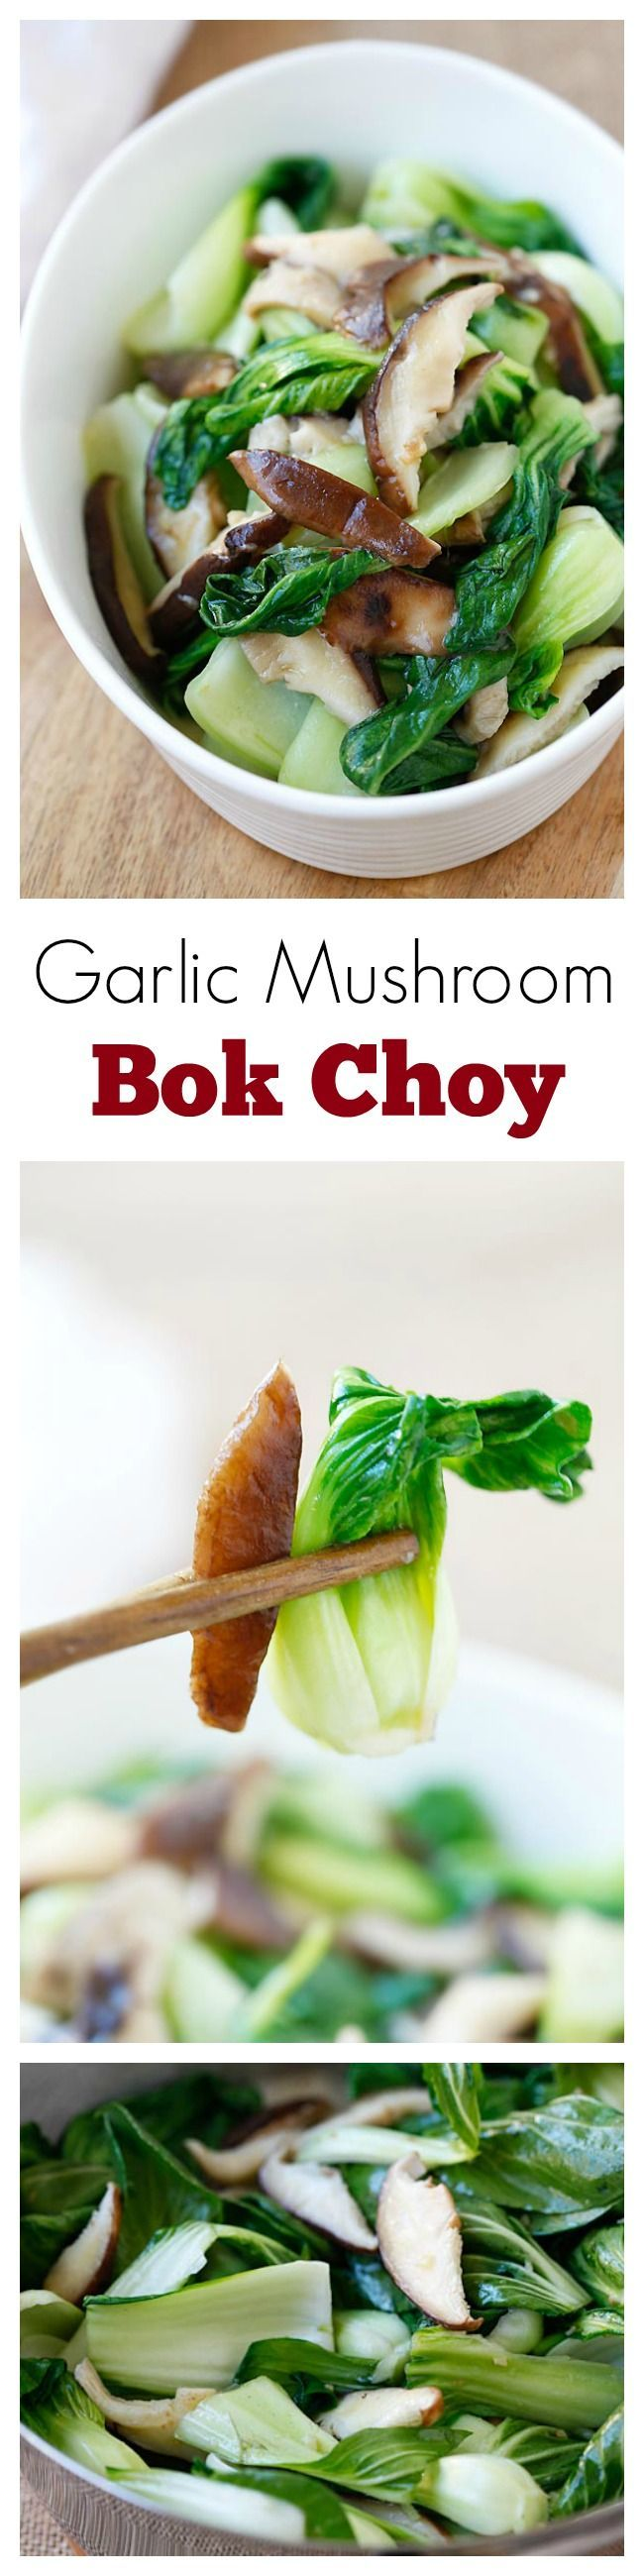 Garlic Mushroom Bok Choy – the easiest, healthiest, and best veggie dish with bok choy, mushroom and garlic. 3 ingredients & 10 minutes to make | rasamalaysia.com | #veggie